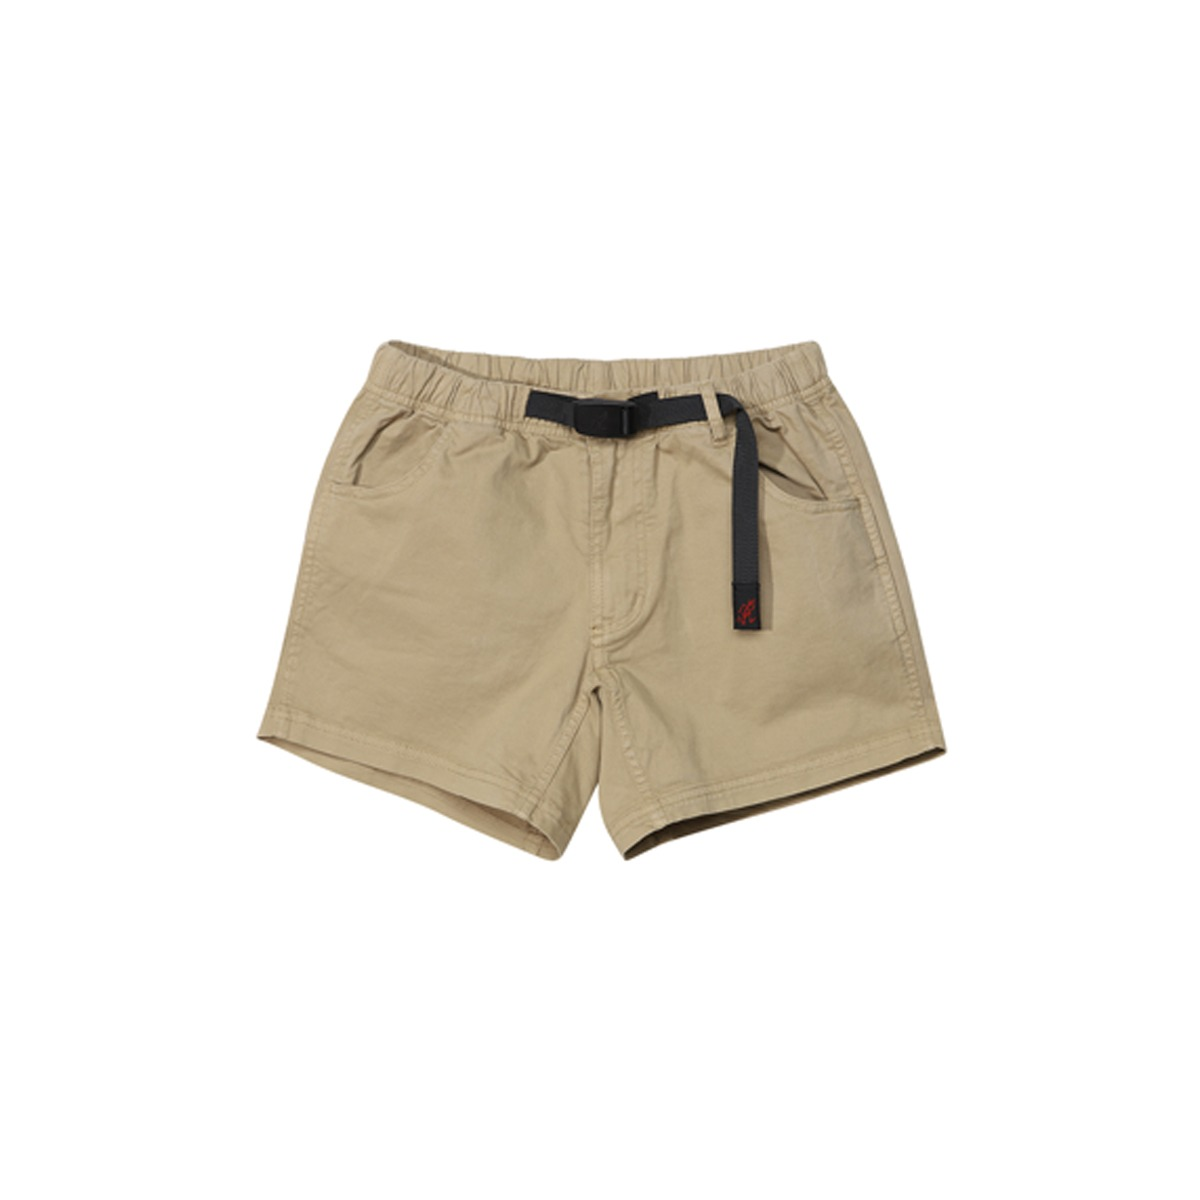 [GRAMICCI] VERY SHORTS (WOMEN) 'CHINO'